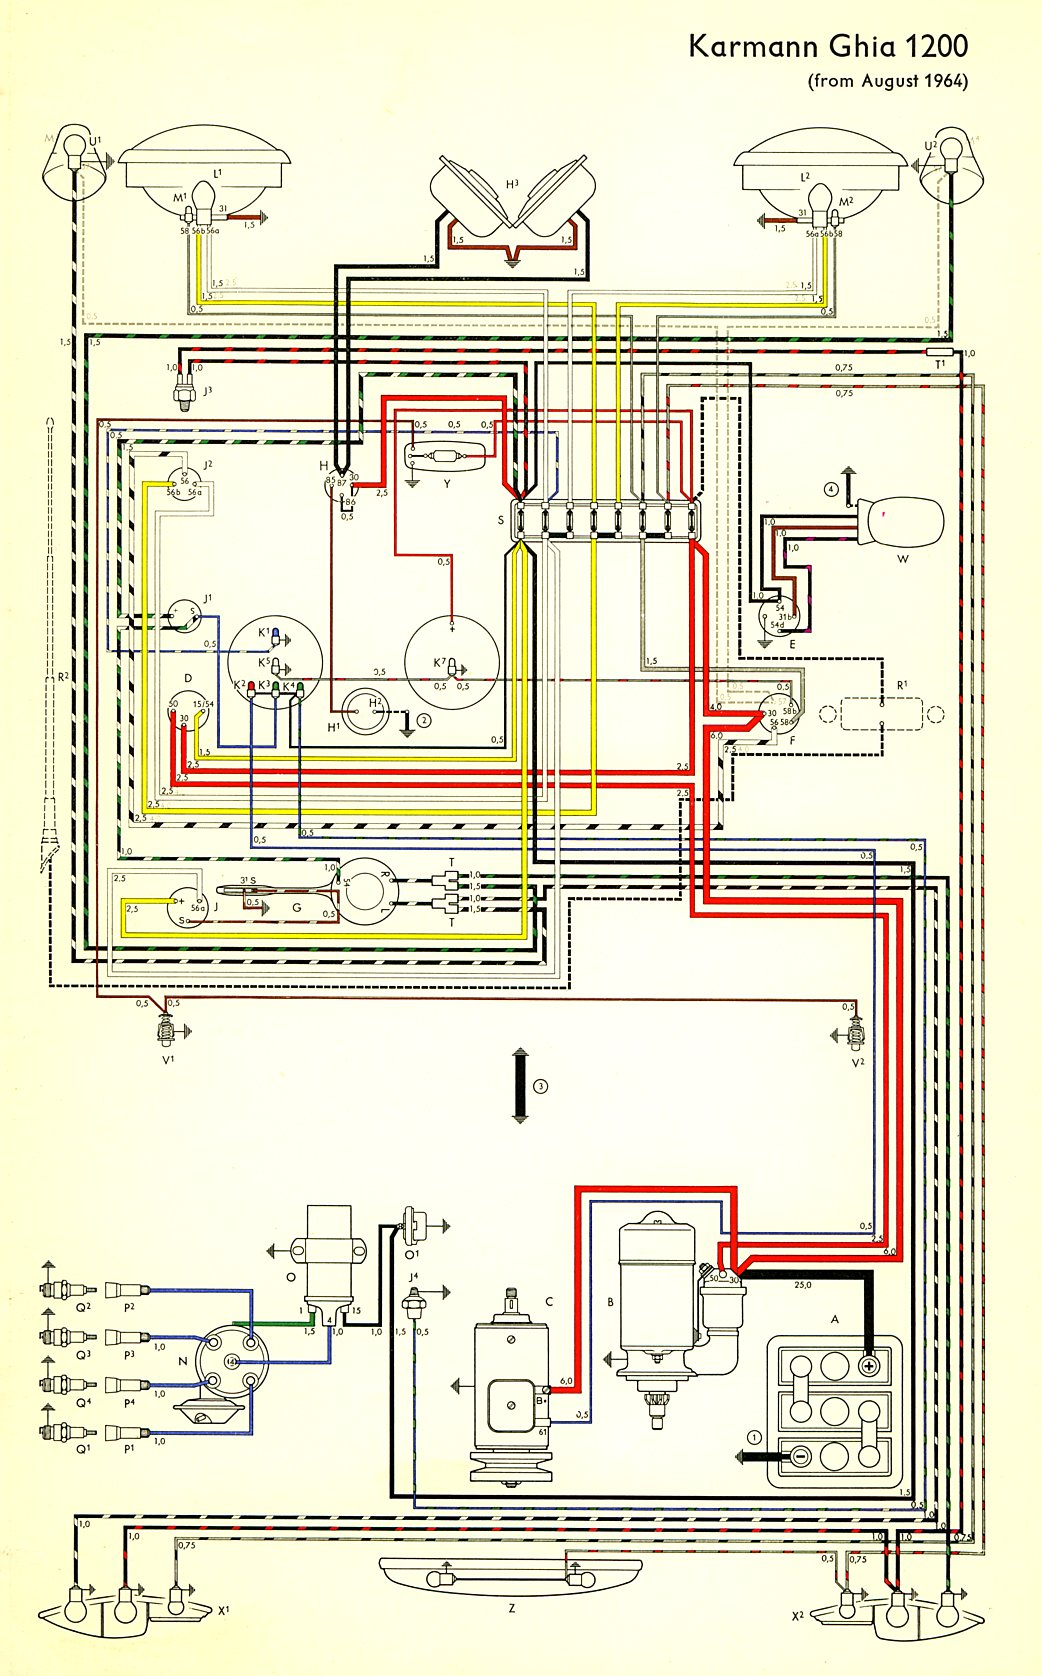 1961 Vw Beetle Wiring Diagram Smart Diagrams Bug Free Download Schematic 1964 1974 1969